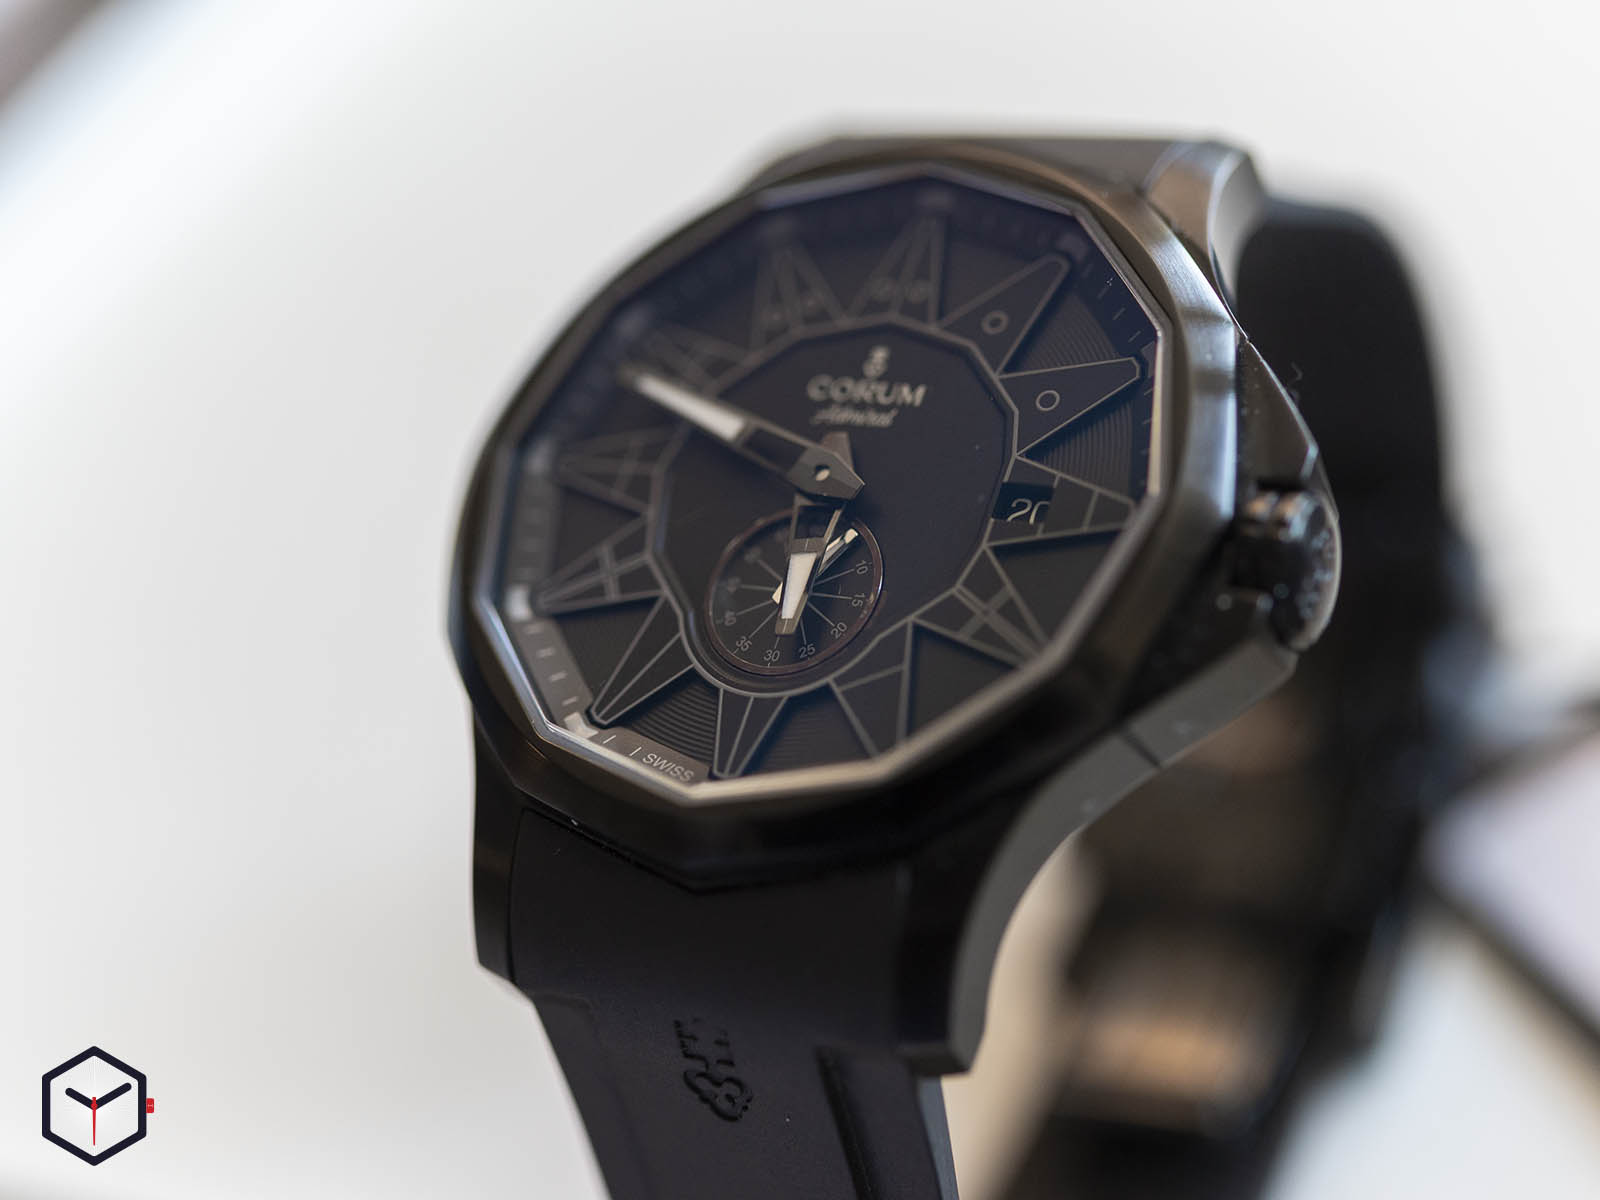 a395-03818-corum-admiral-42-full-black-limited-edition-2.jpg